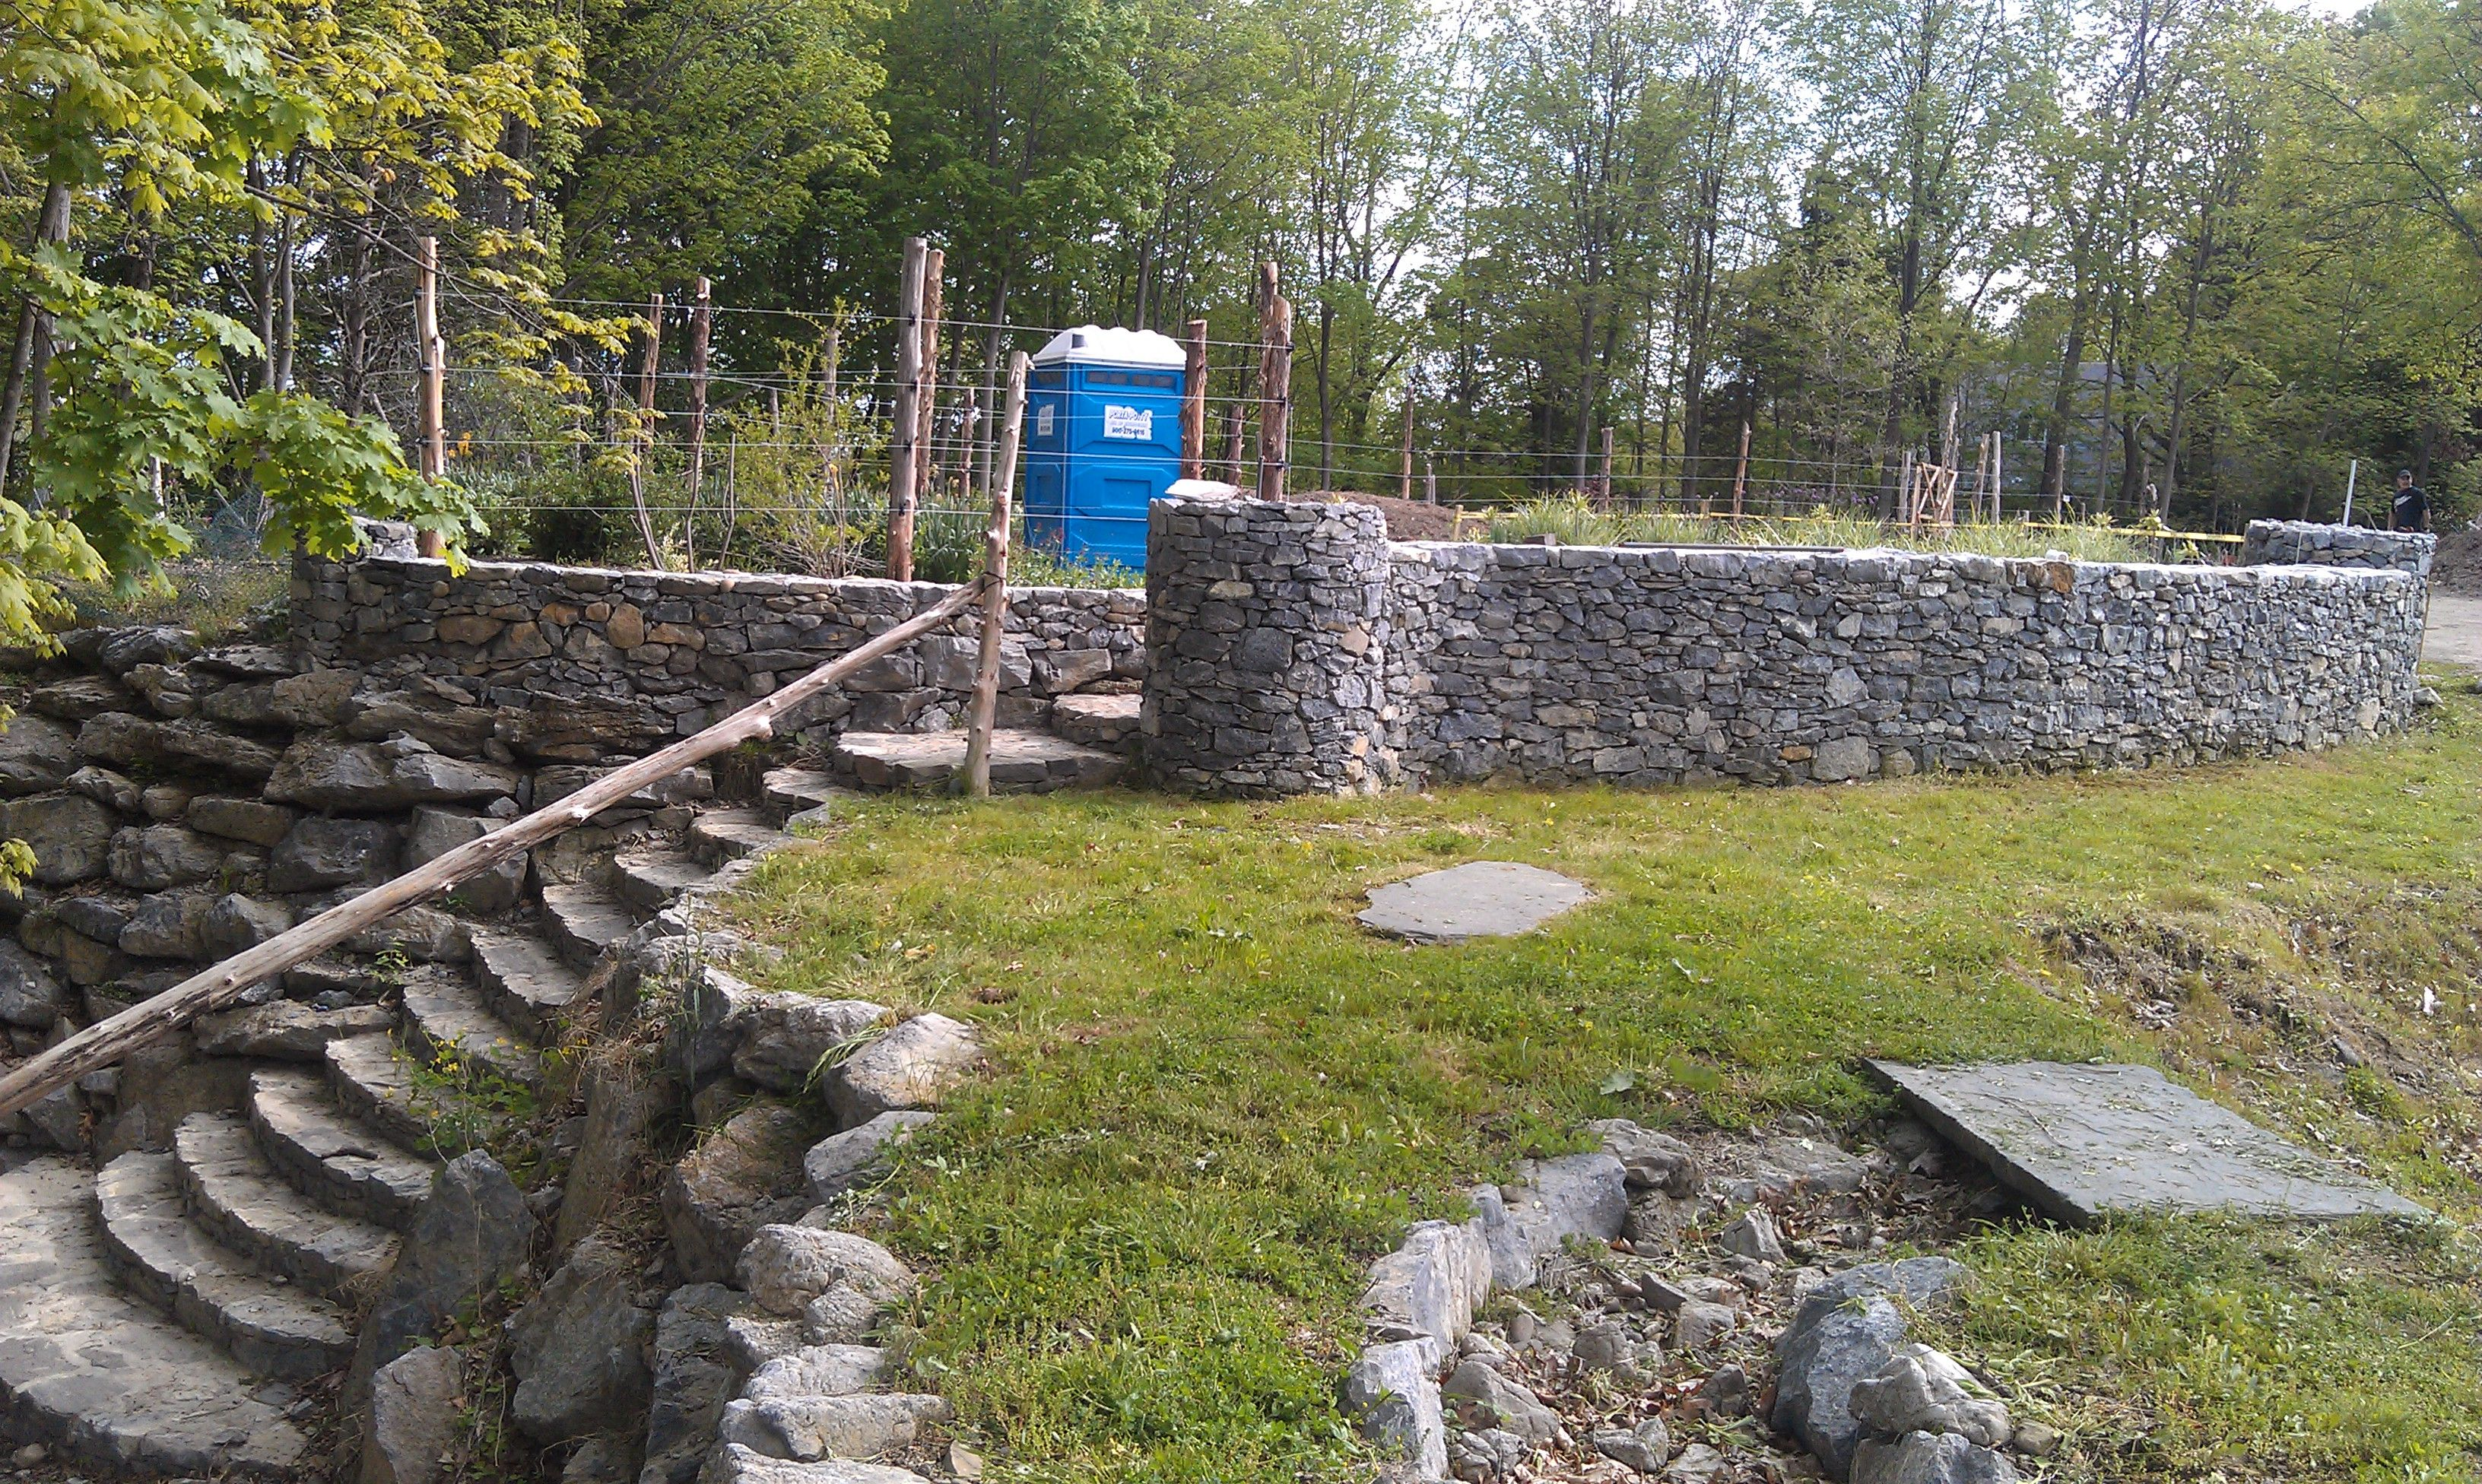 Curving stone stair case, curving stone walls, dry stream bed with natural blue stone slab bridge, ending in waterfall into what will be a large pond,